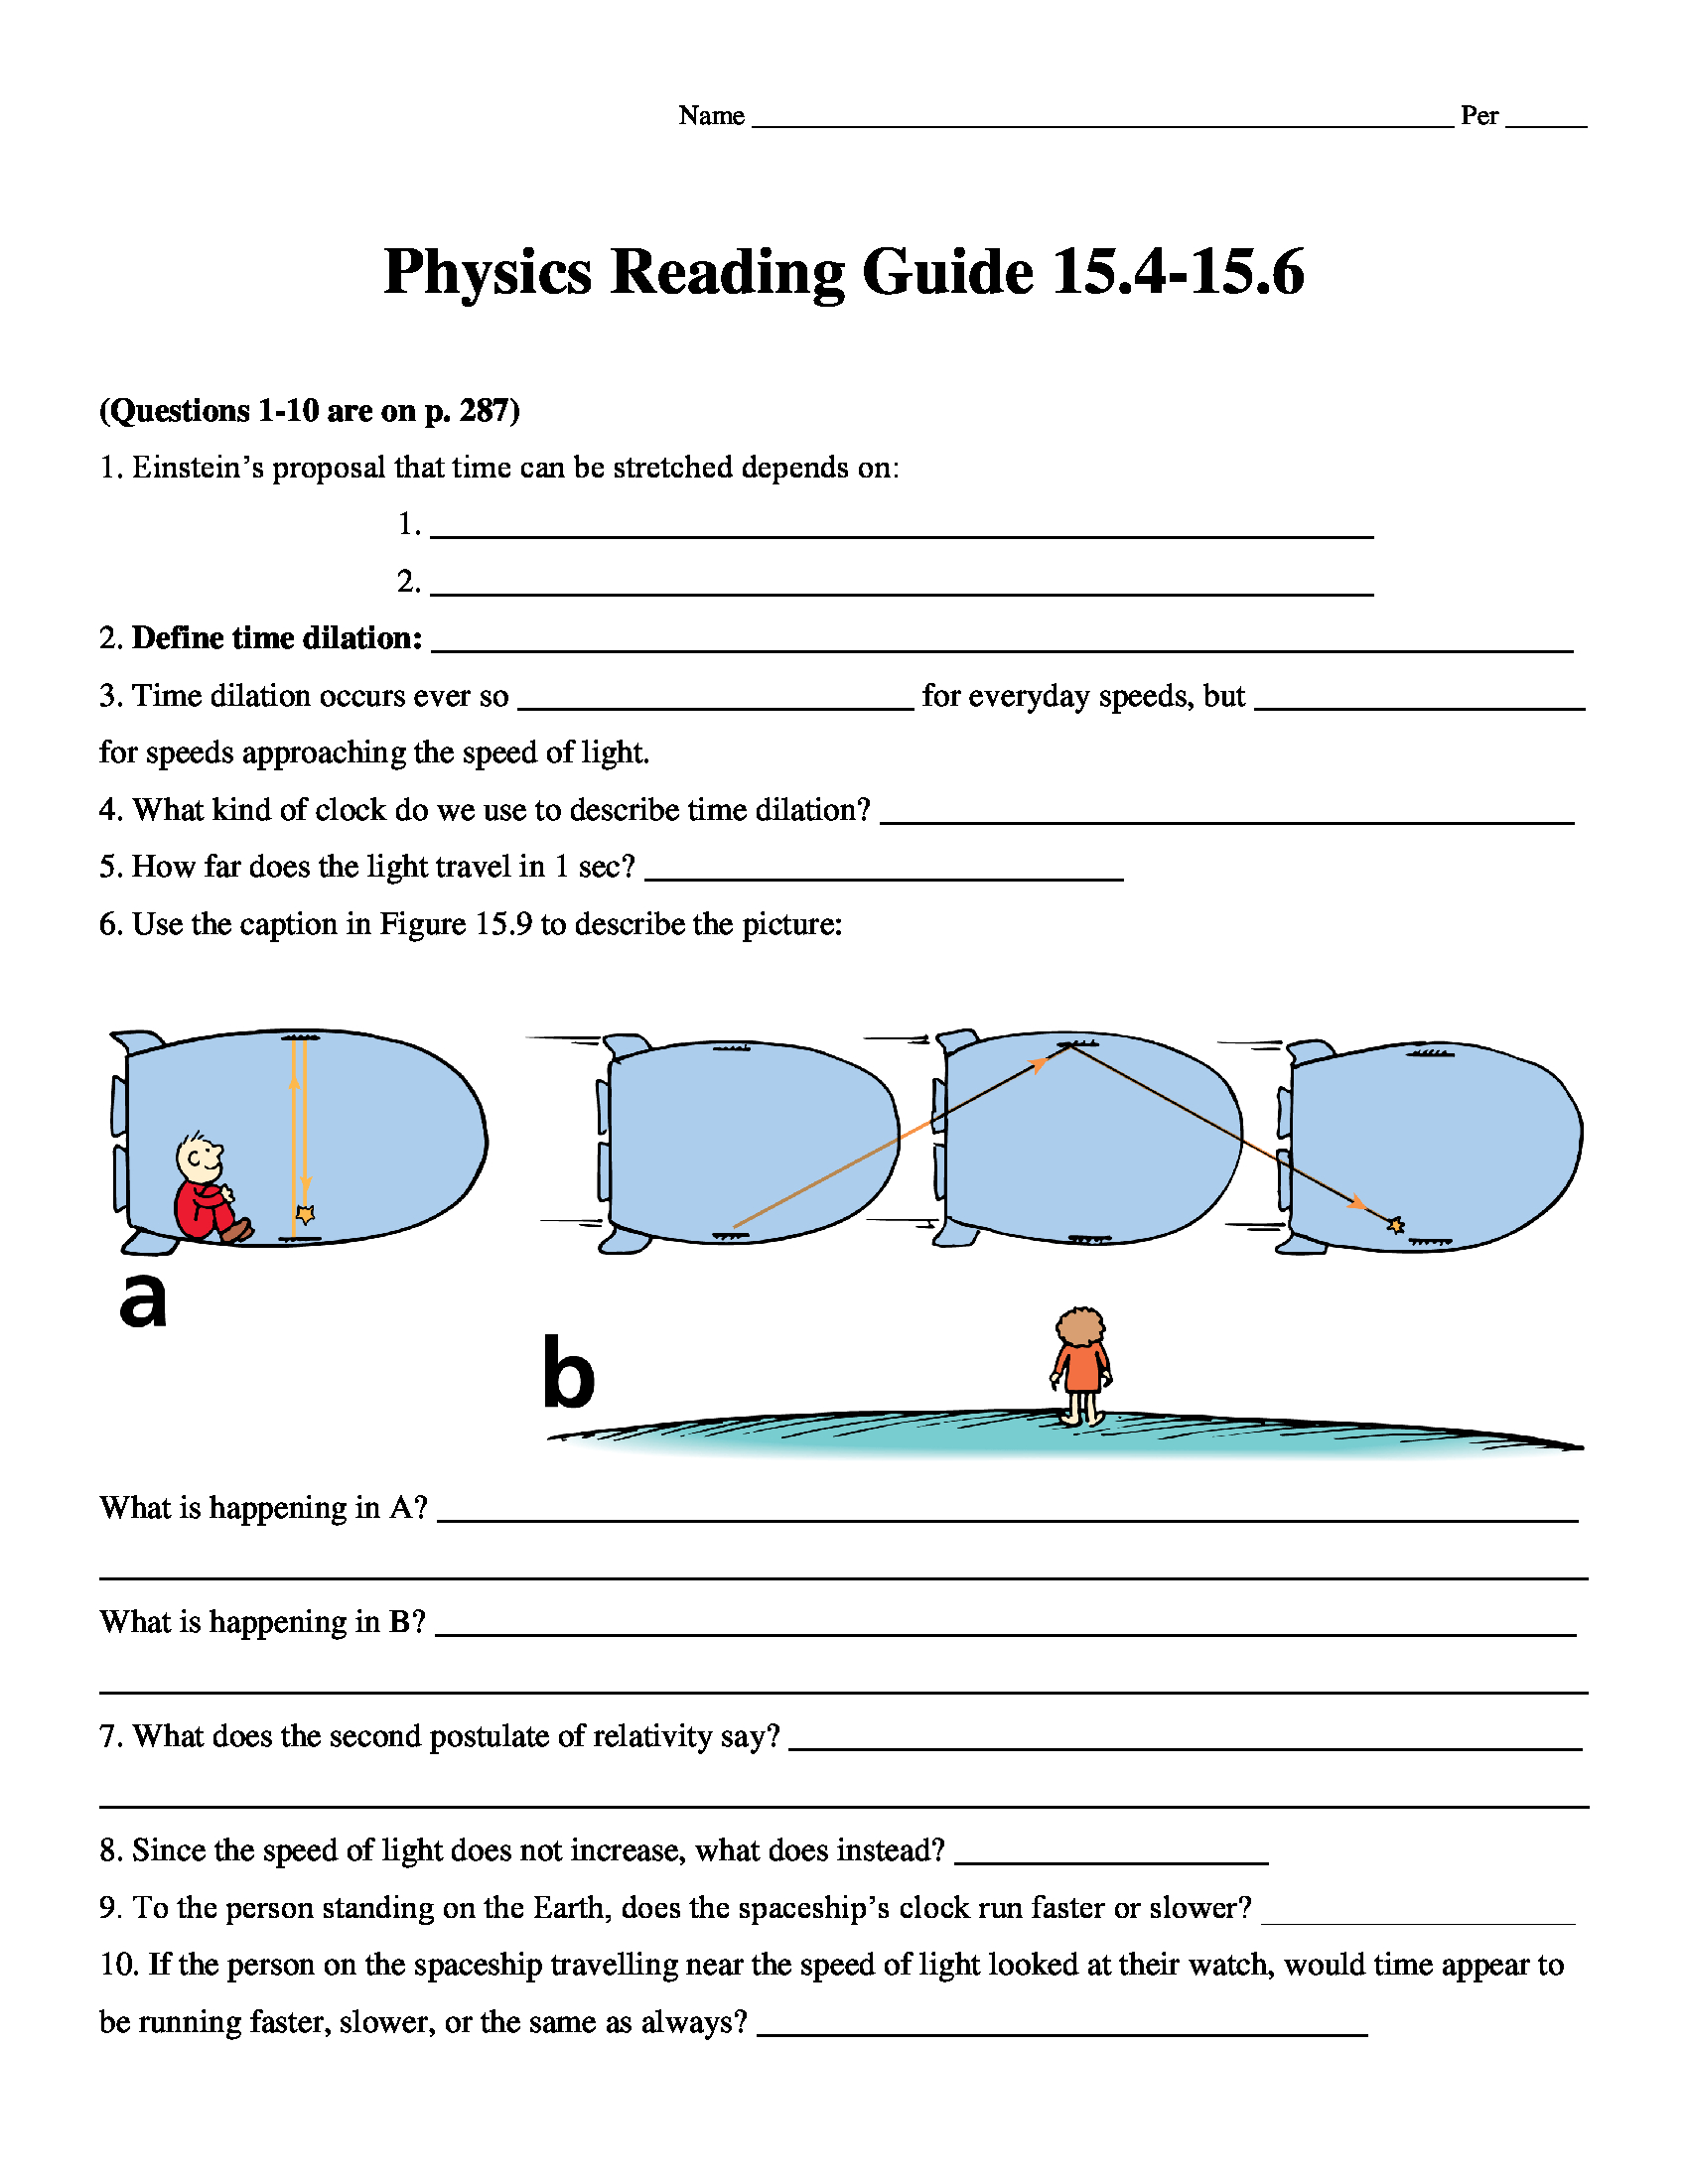 Conceptual Physics (2009) Reading Guide Worksheet Chapter 15.4-15.6 -  Conceptual Science Lessons.Com